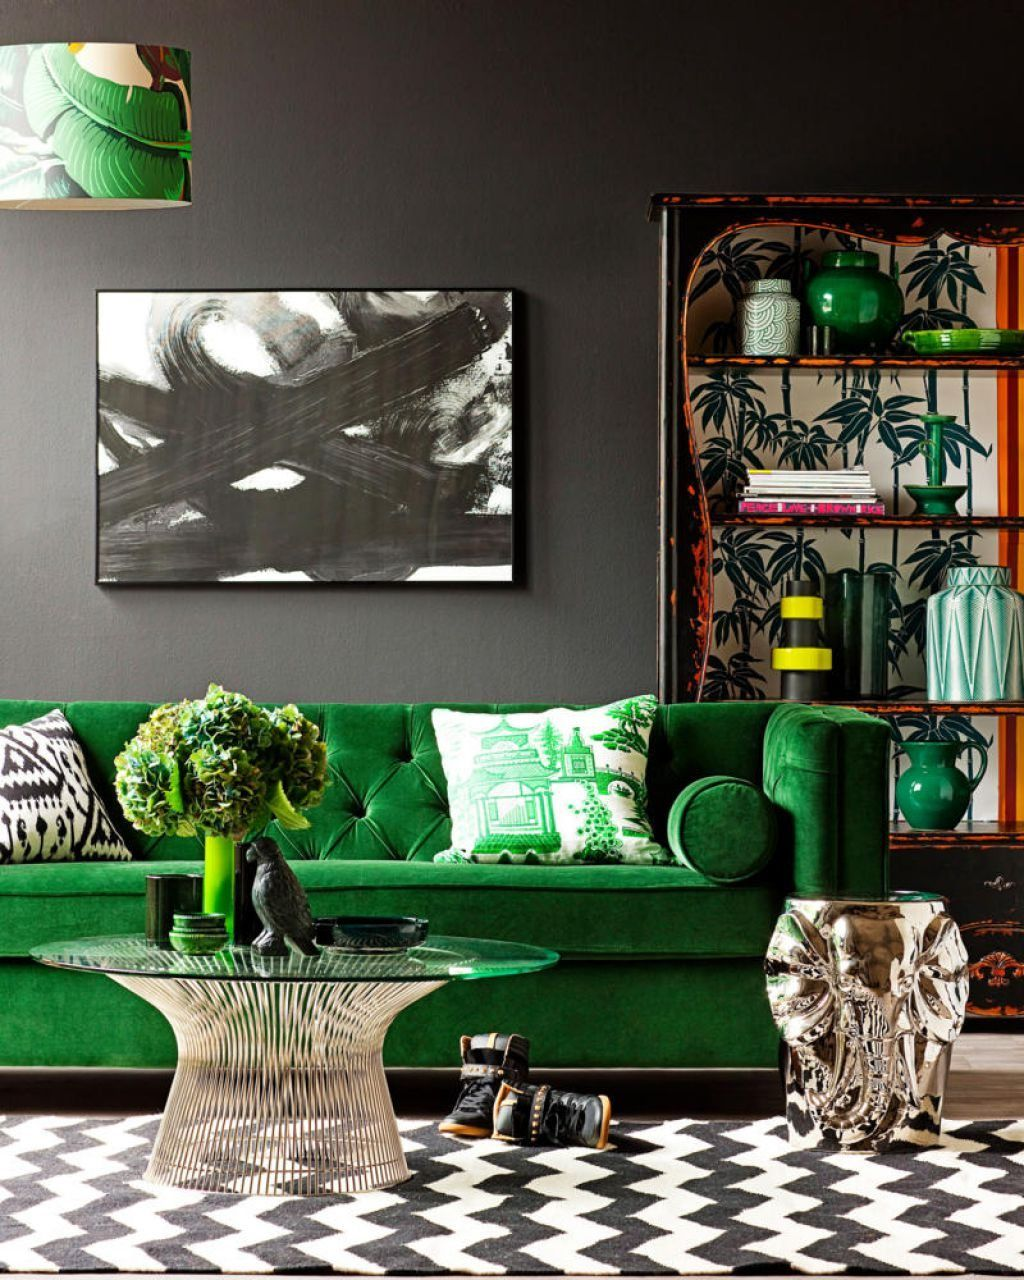 Living Room Design Green: Decorating Ideas With A Green Sofa